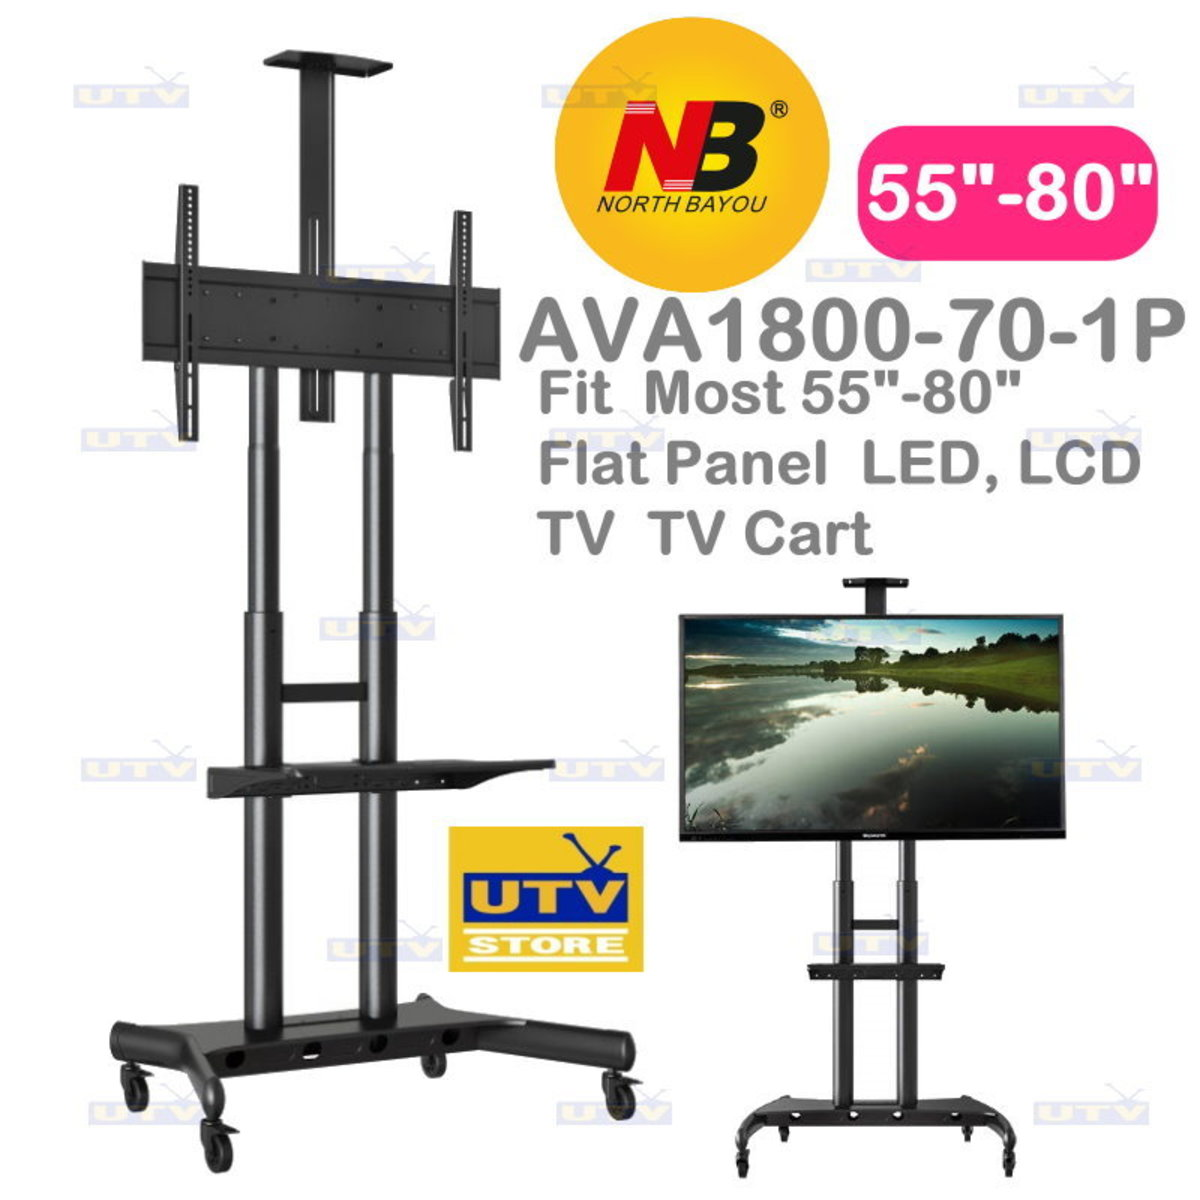 "AVA1800-70-1P Fit Most 55""-80"" Flat Panel LED, LCD TV TV Cart"